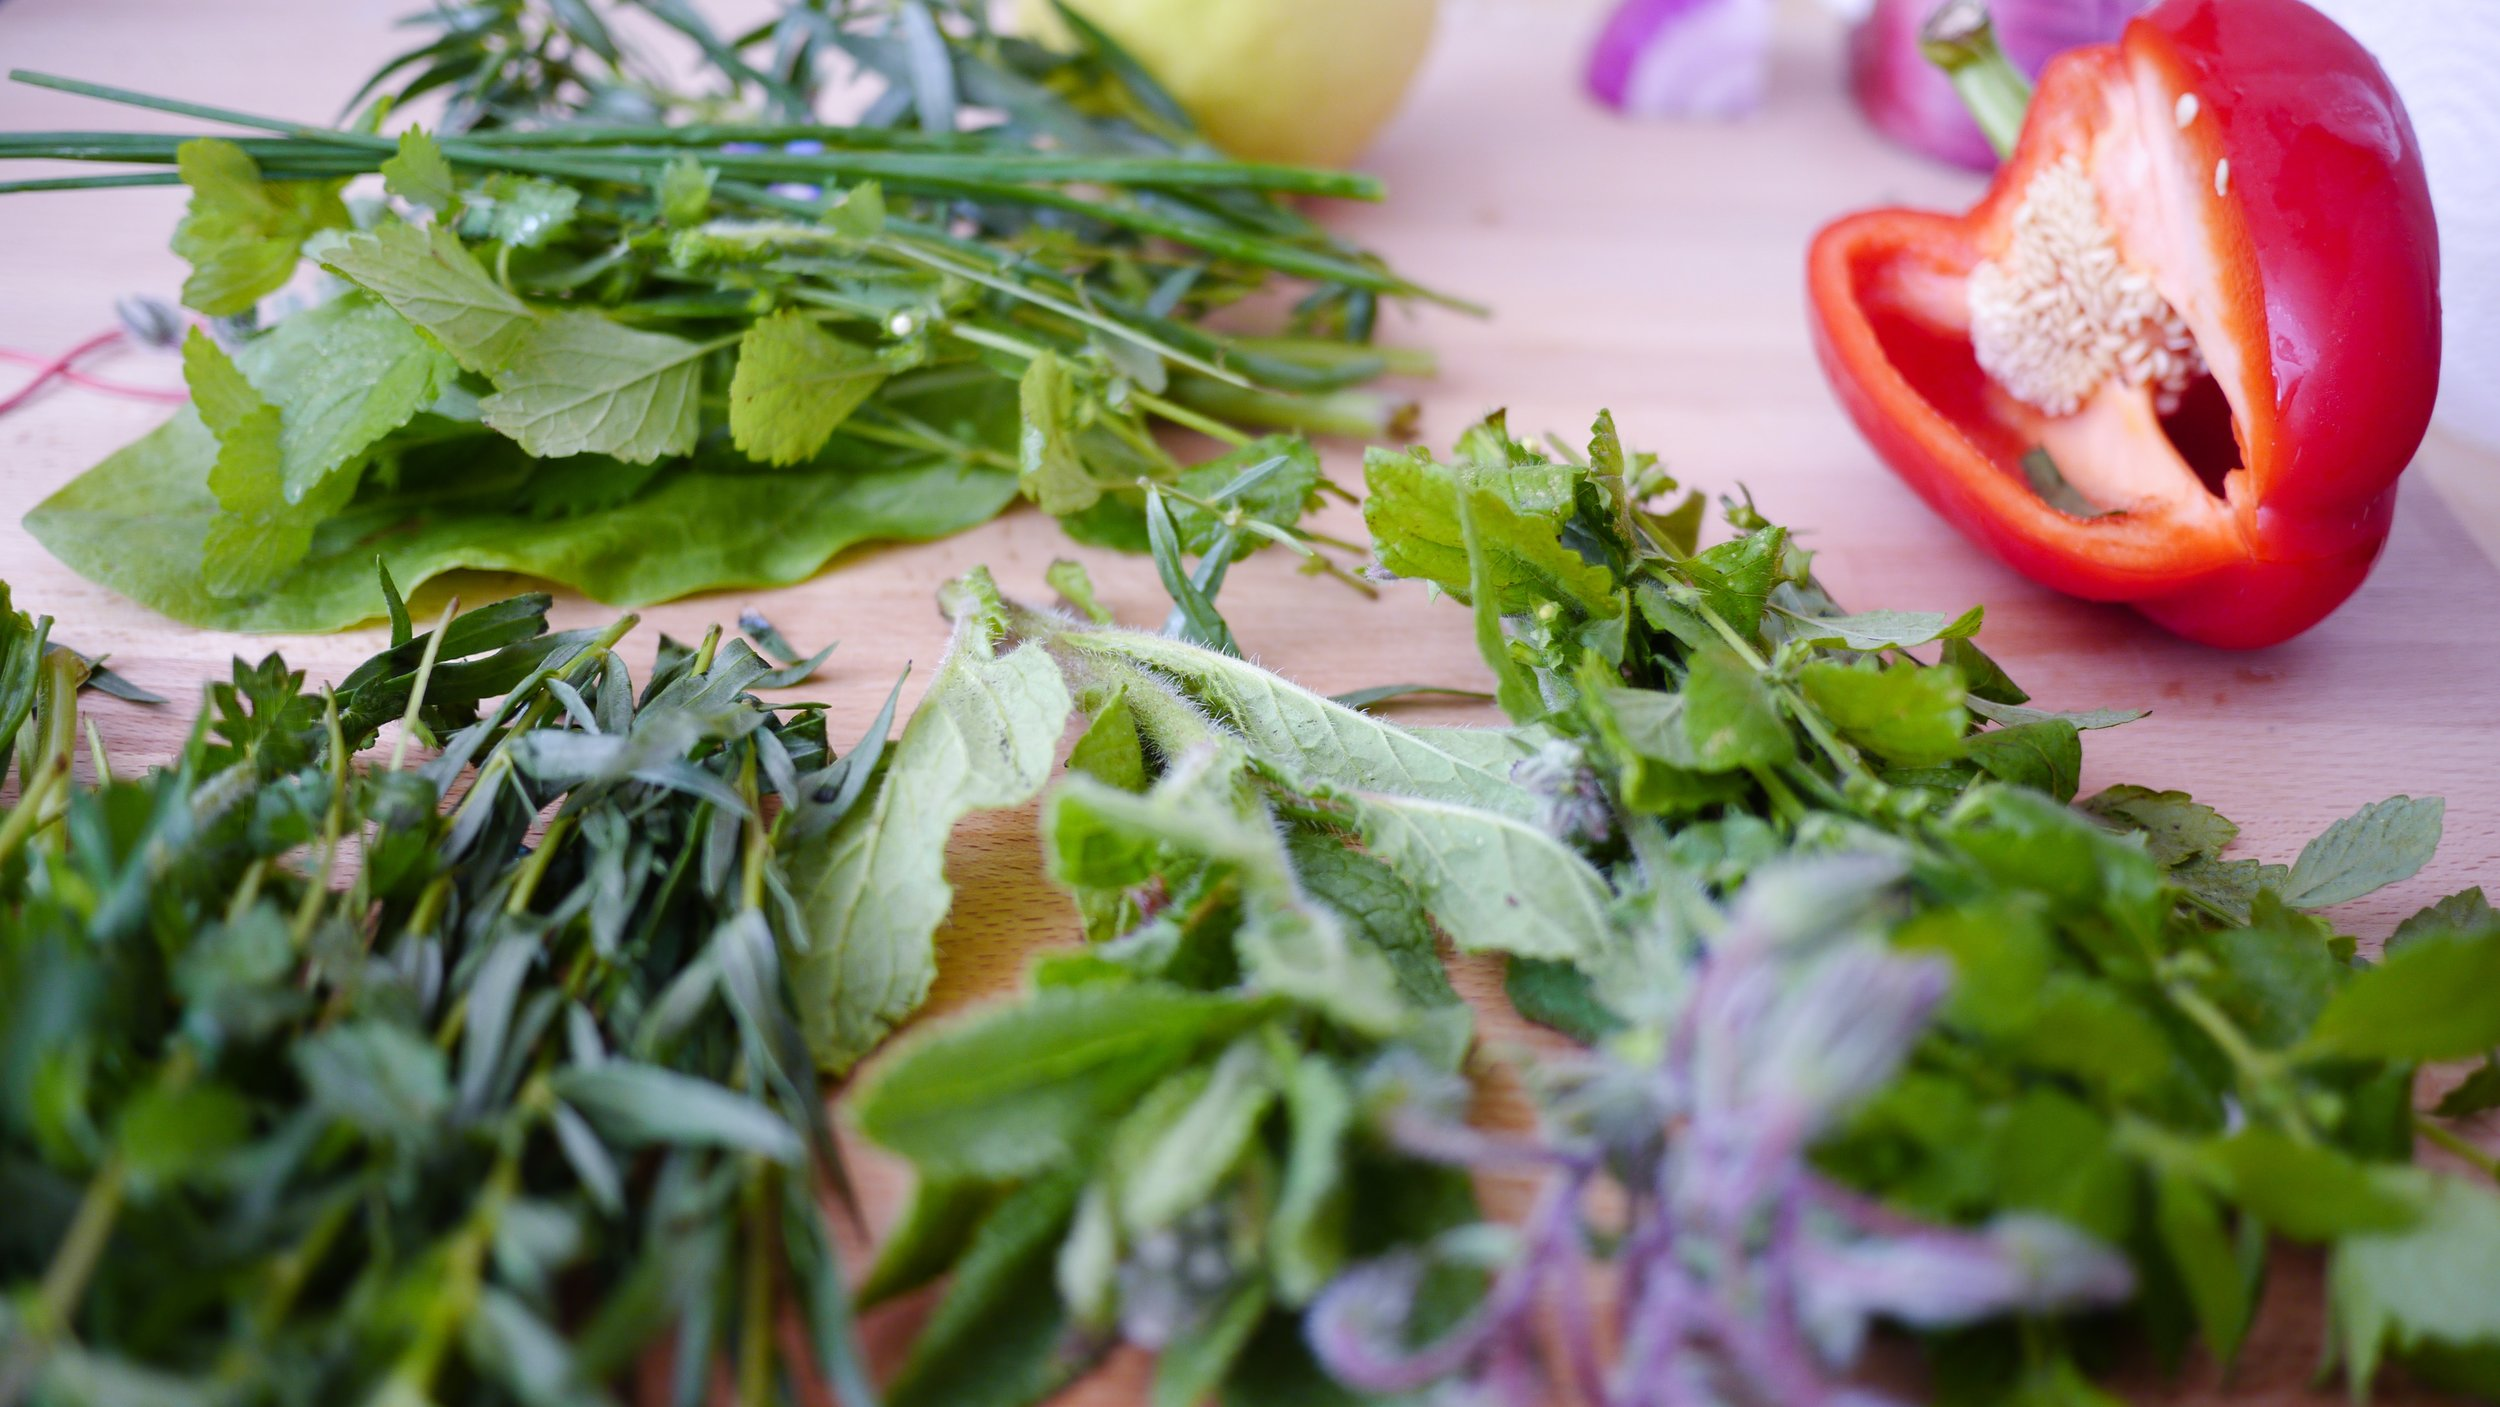 A variety of colorful, flavorful herbs for your kitchen.